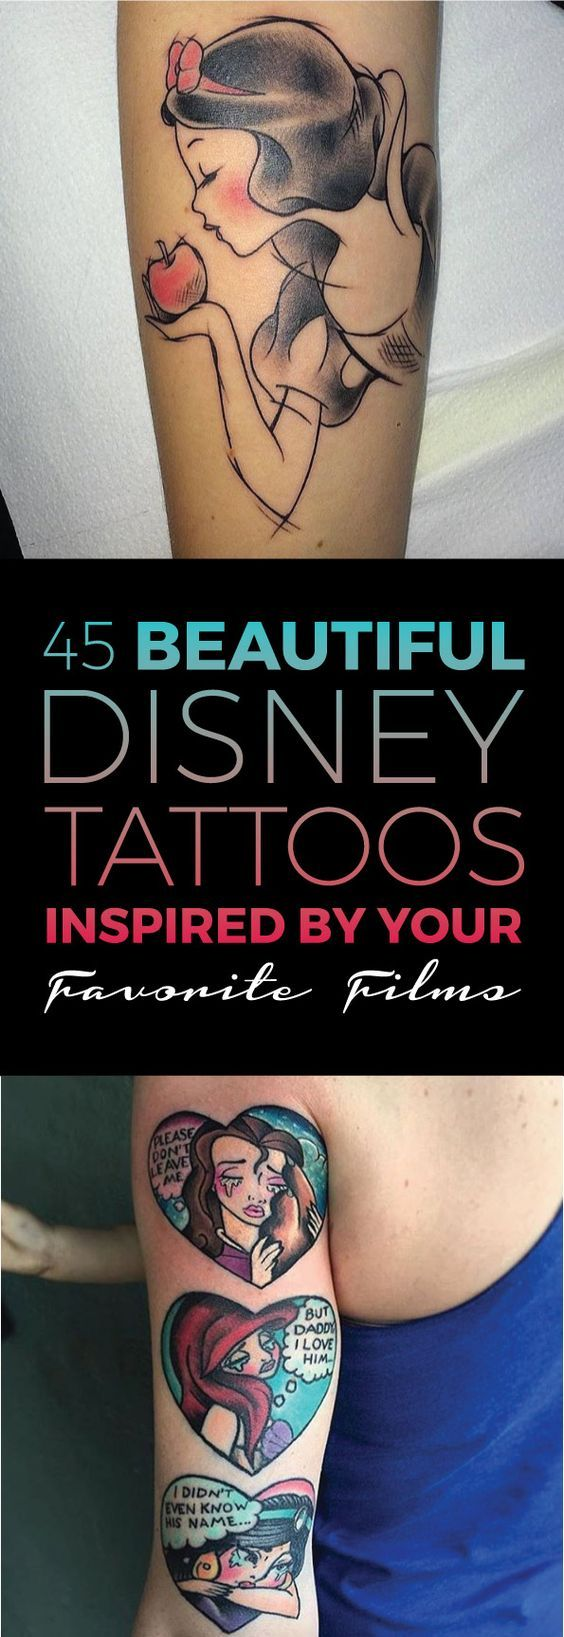 die besten 25 disney inspiriert tattoos ideen auf. Black Bedroom Furniture Sets. Home Design Ideas